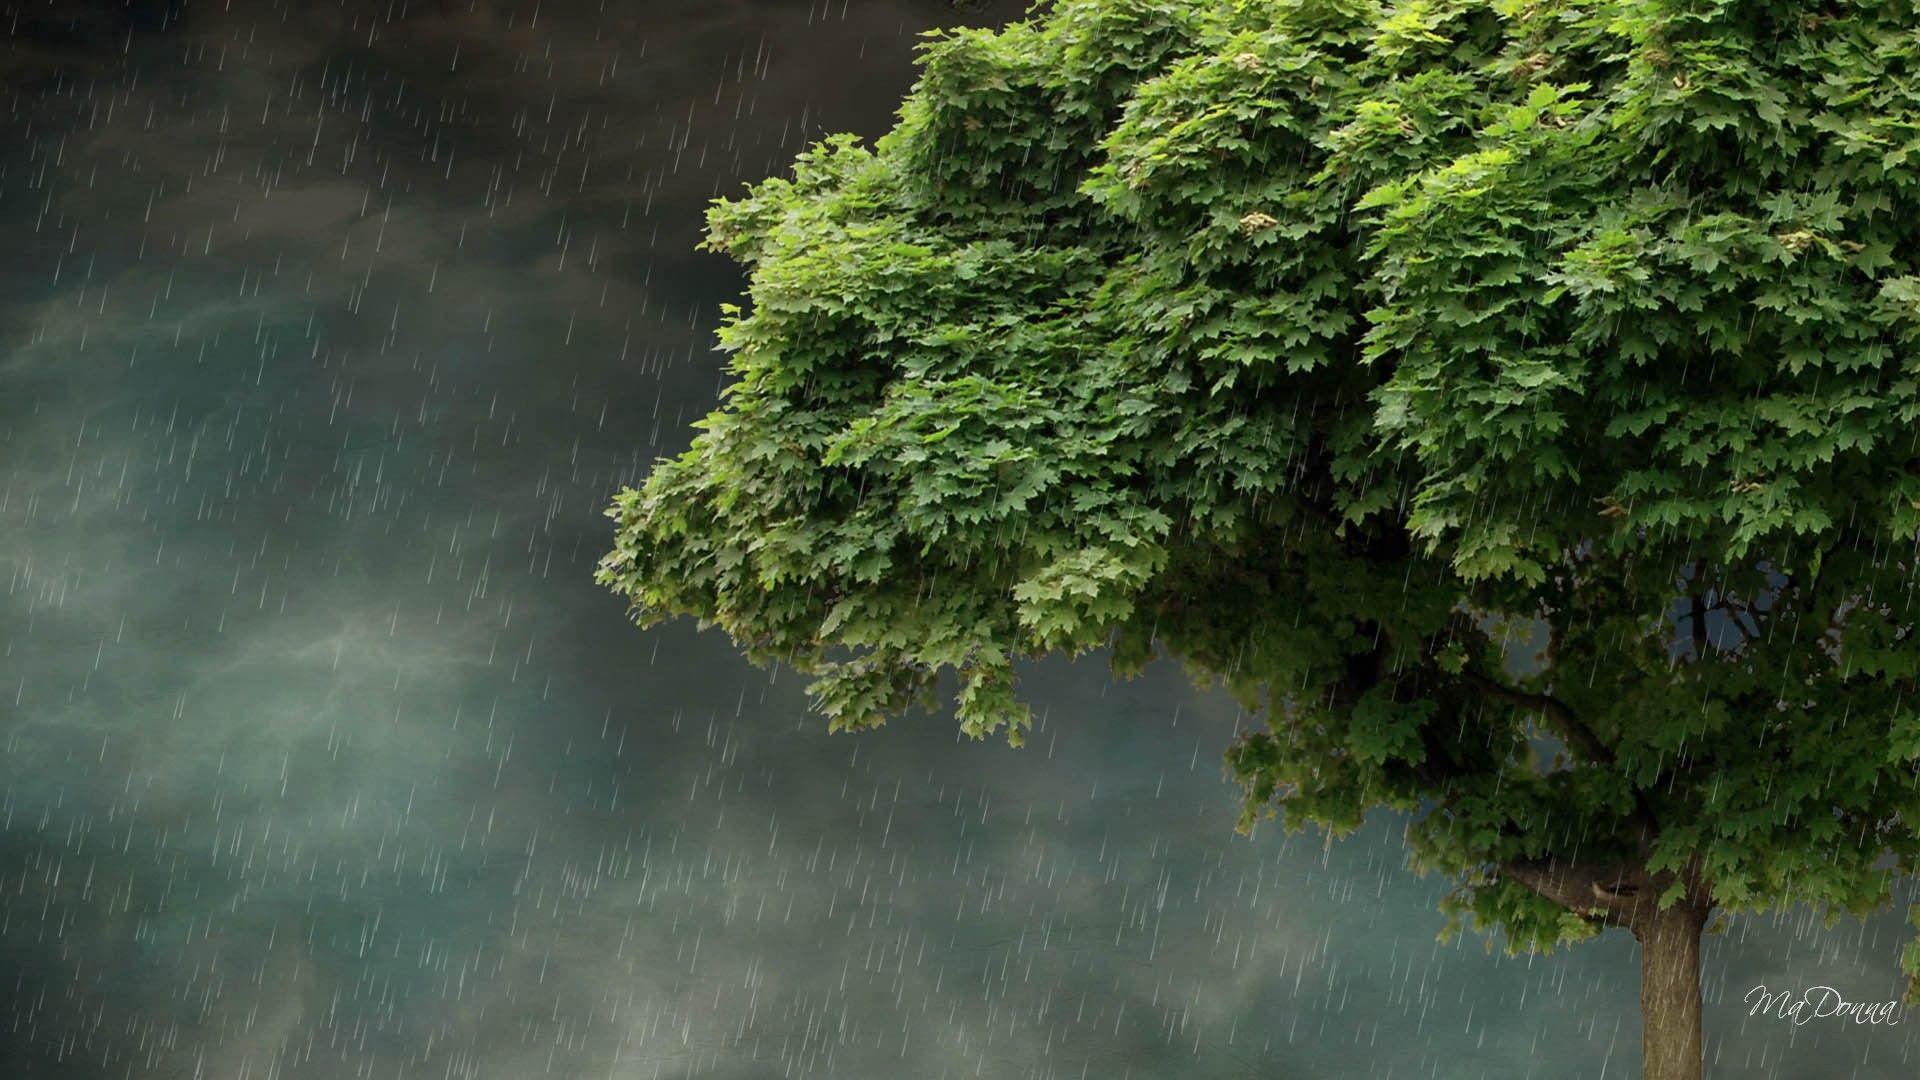 Hq Japan Nature Rain Fall Wallpapers Hd Wallpapers Rain Wallpapers Nature Wallpaper Artistic Wallpaper